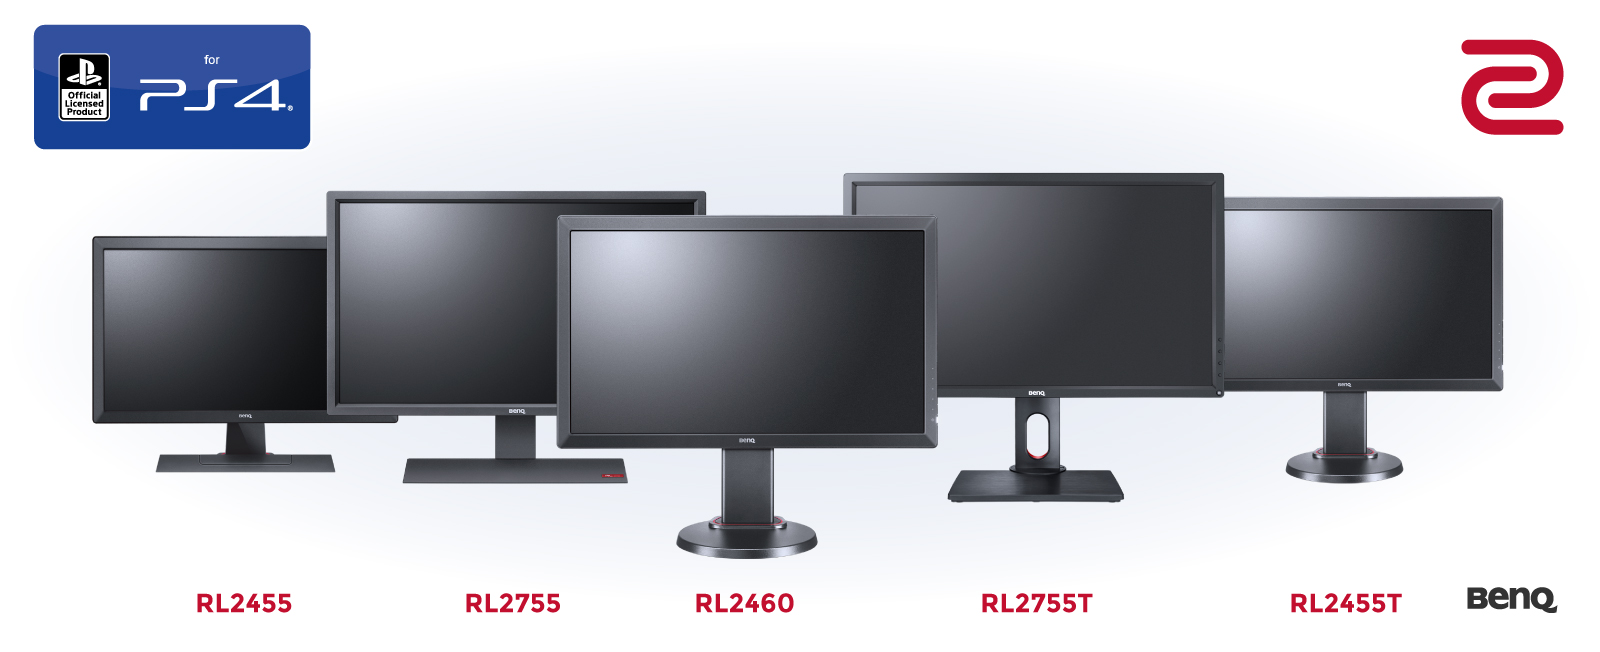 Benq Zowie Rl2755 27 Inch Console Gaming Monitor Introducing The Rl Esports Series For Playstation 4